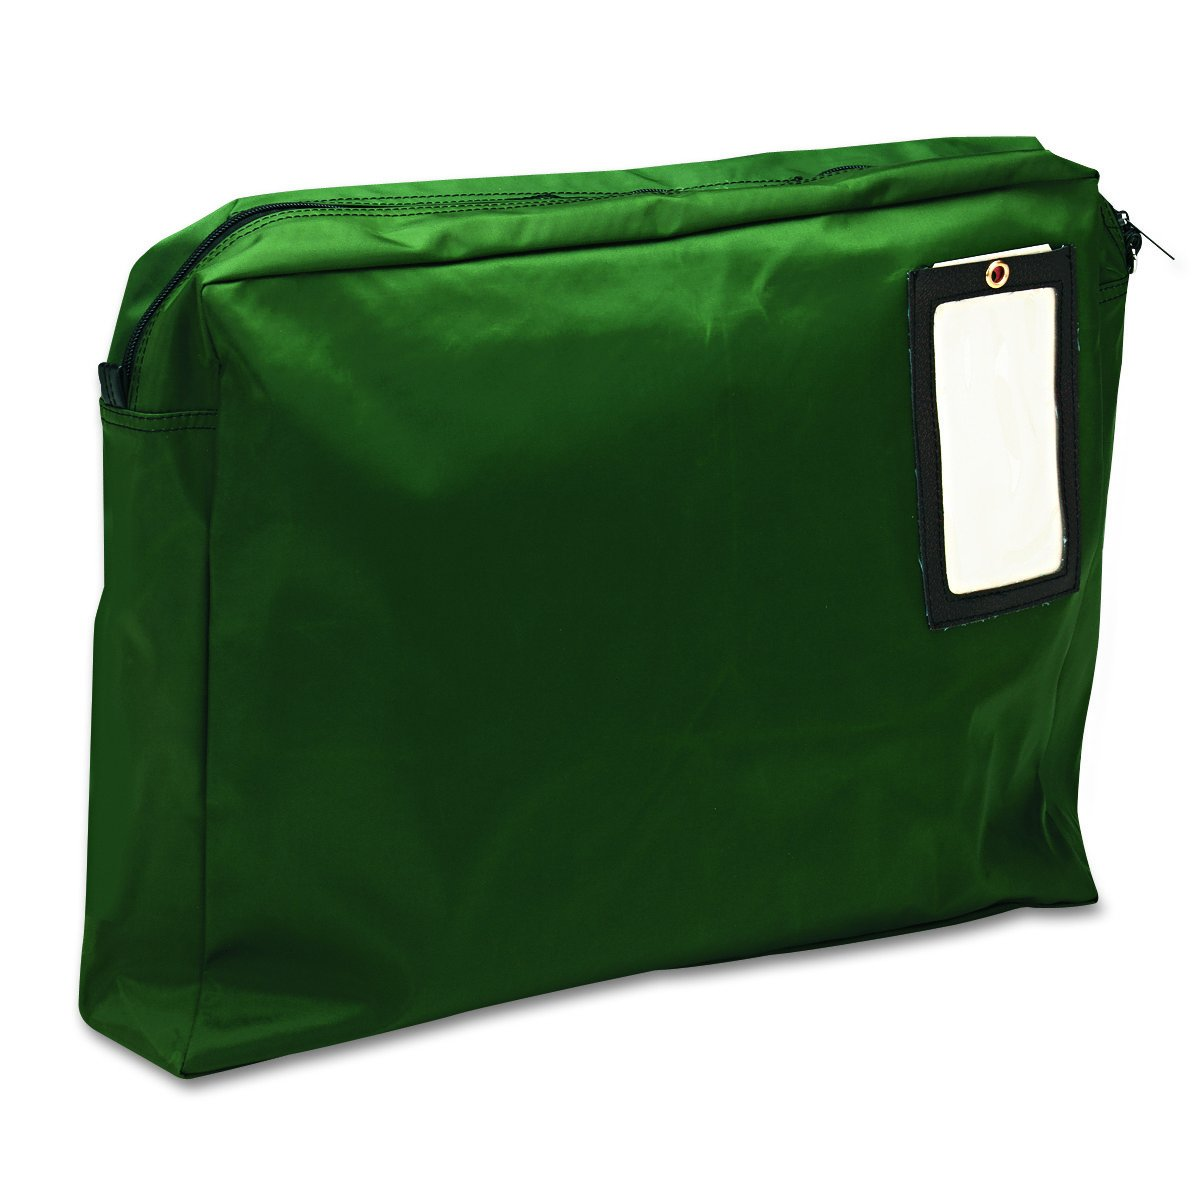 MMF Industries Expandable Nylon Transit Sac, 18 x 14 x 4 Inches, Hunter Green (2342814L02) by MMF Industries